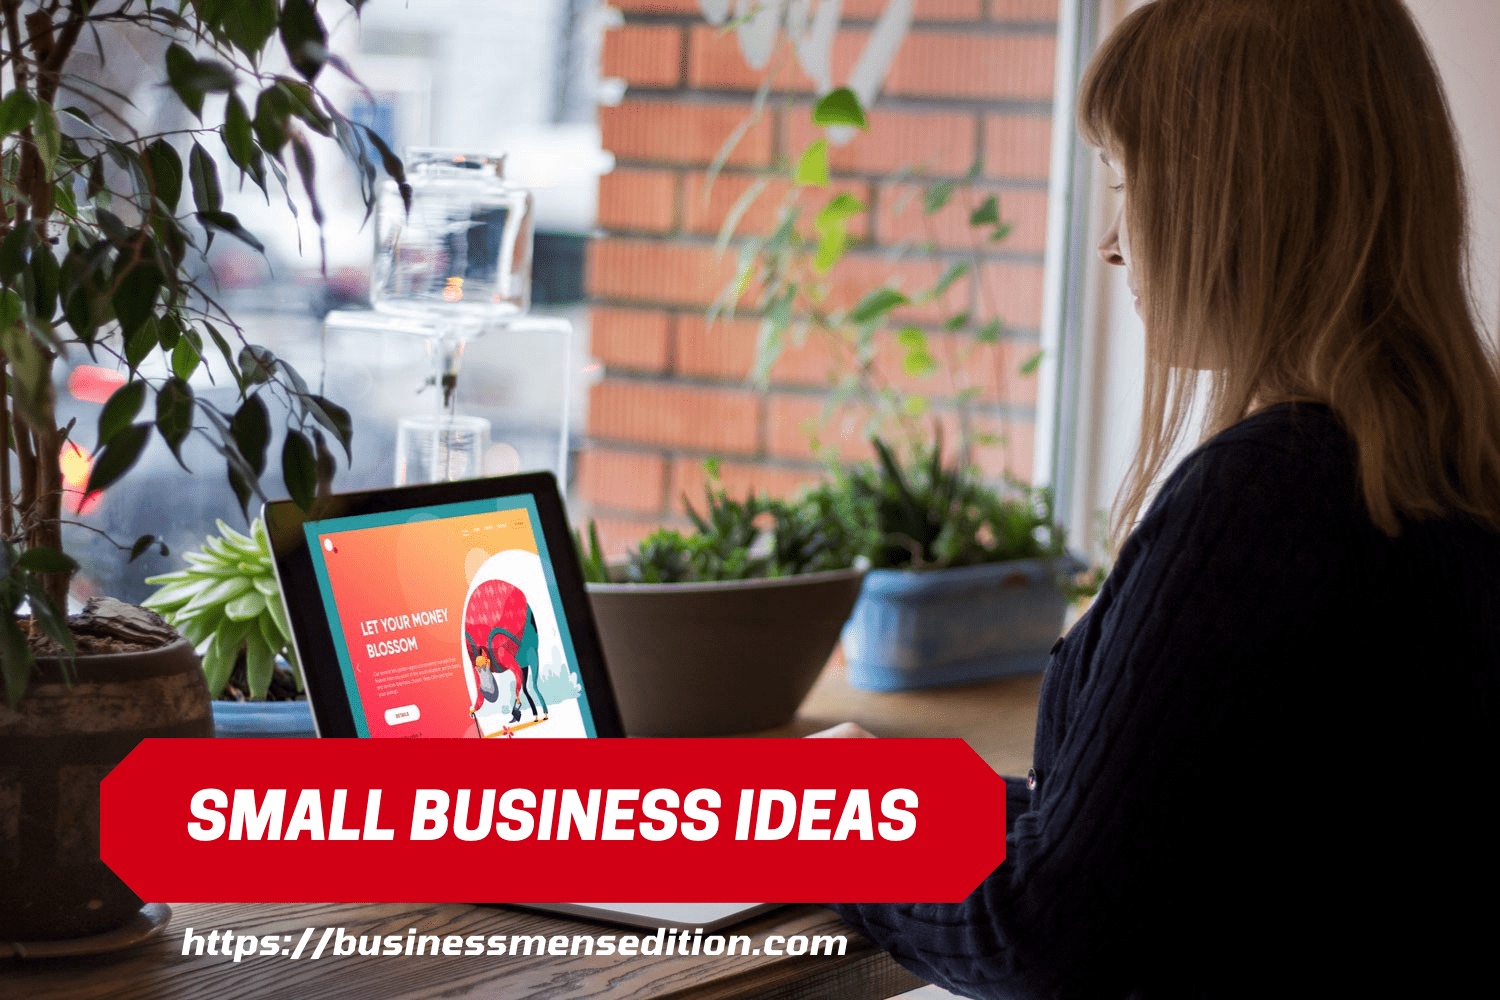 Small Business Ideas You Can Plan For 2022